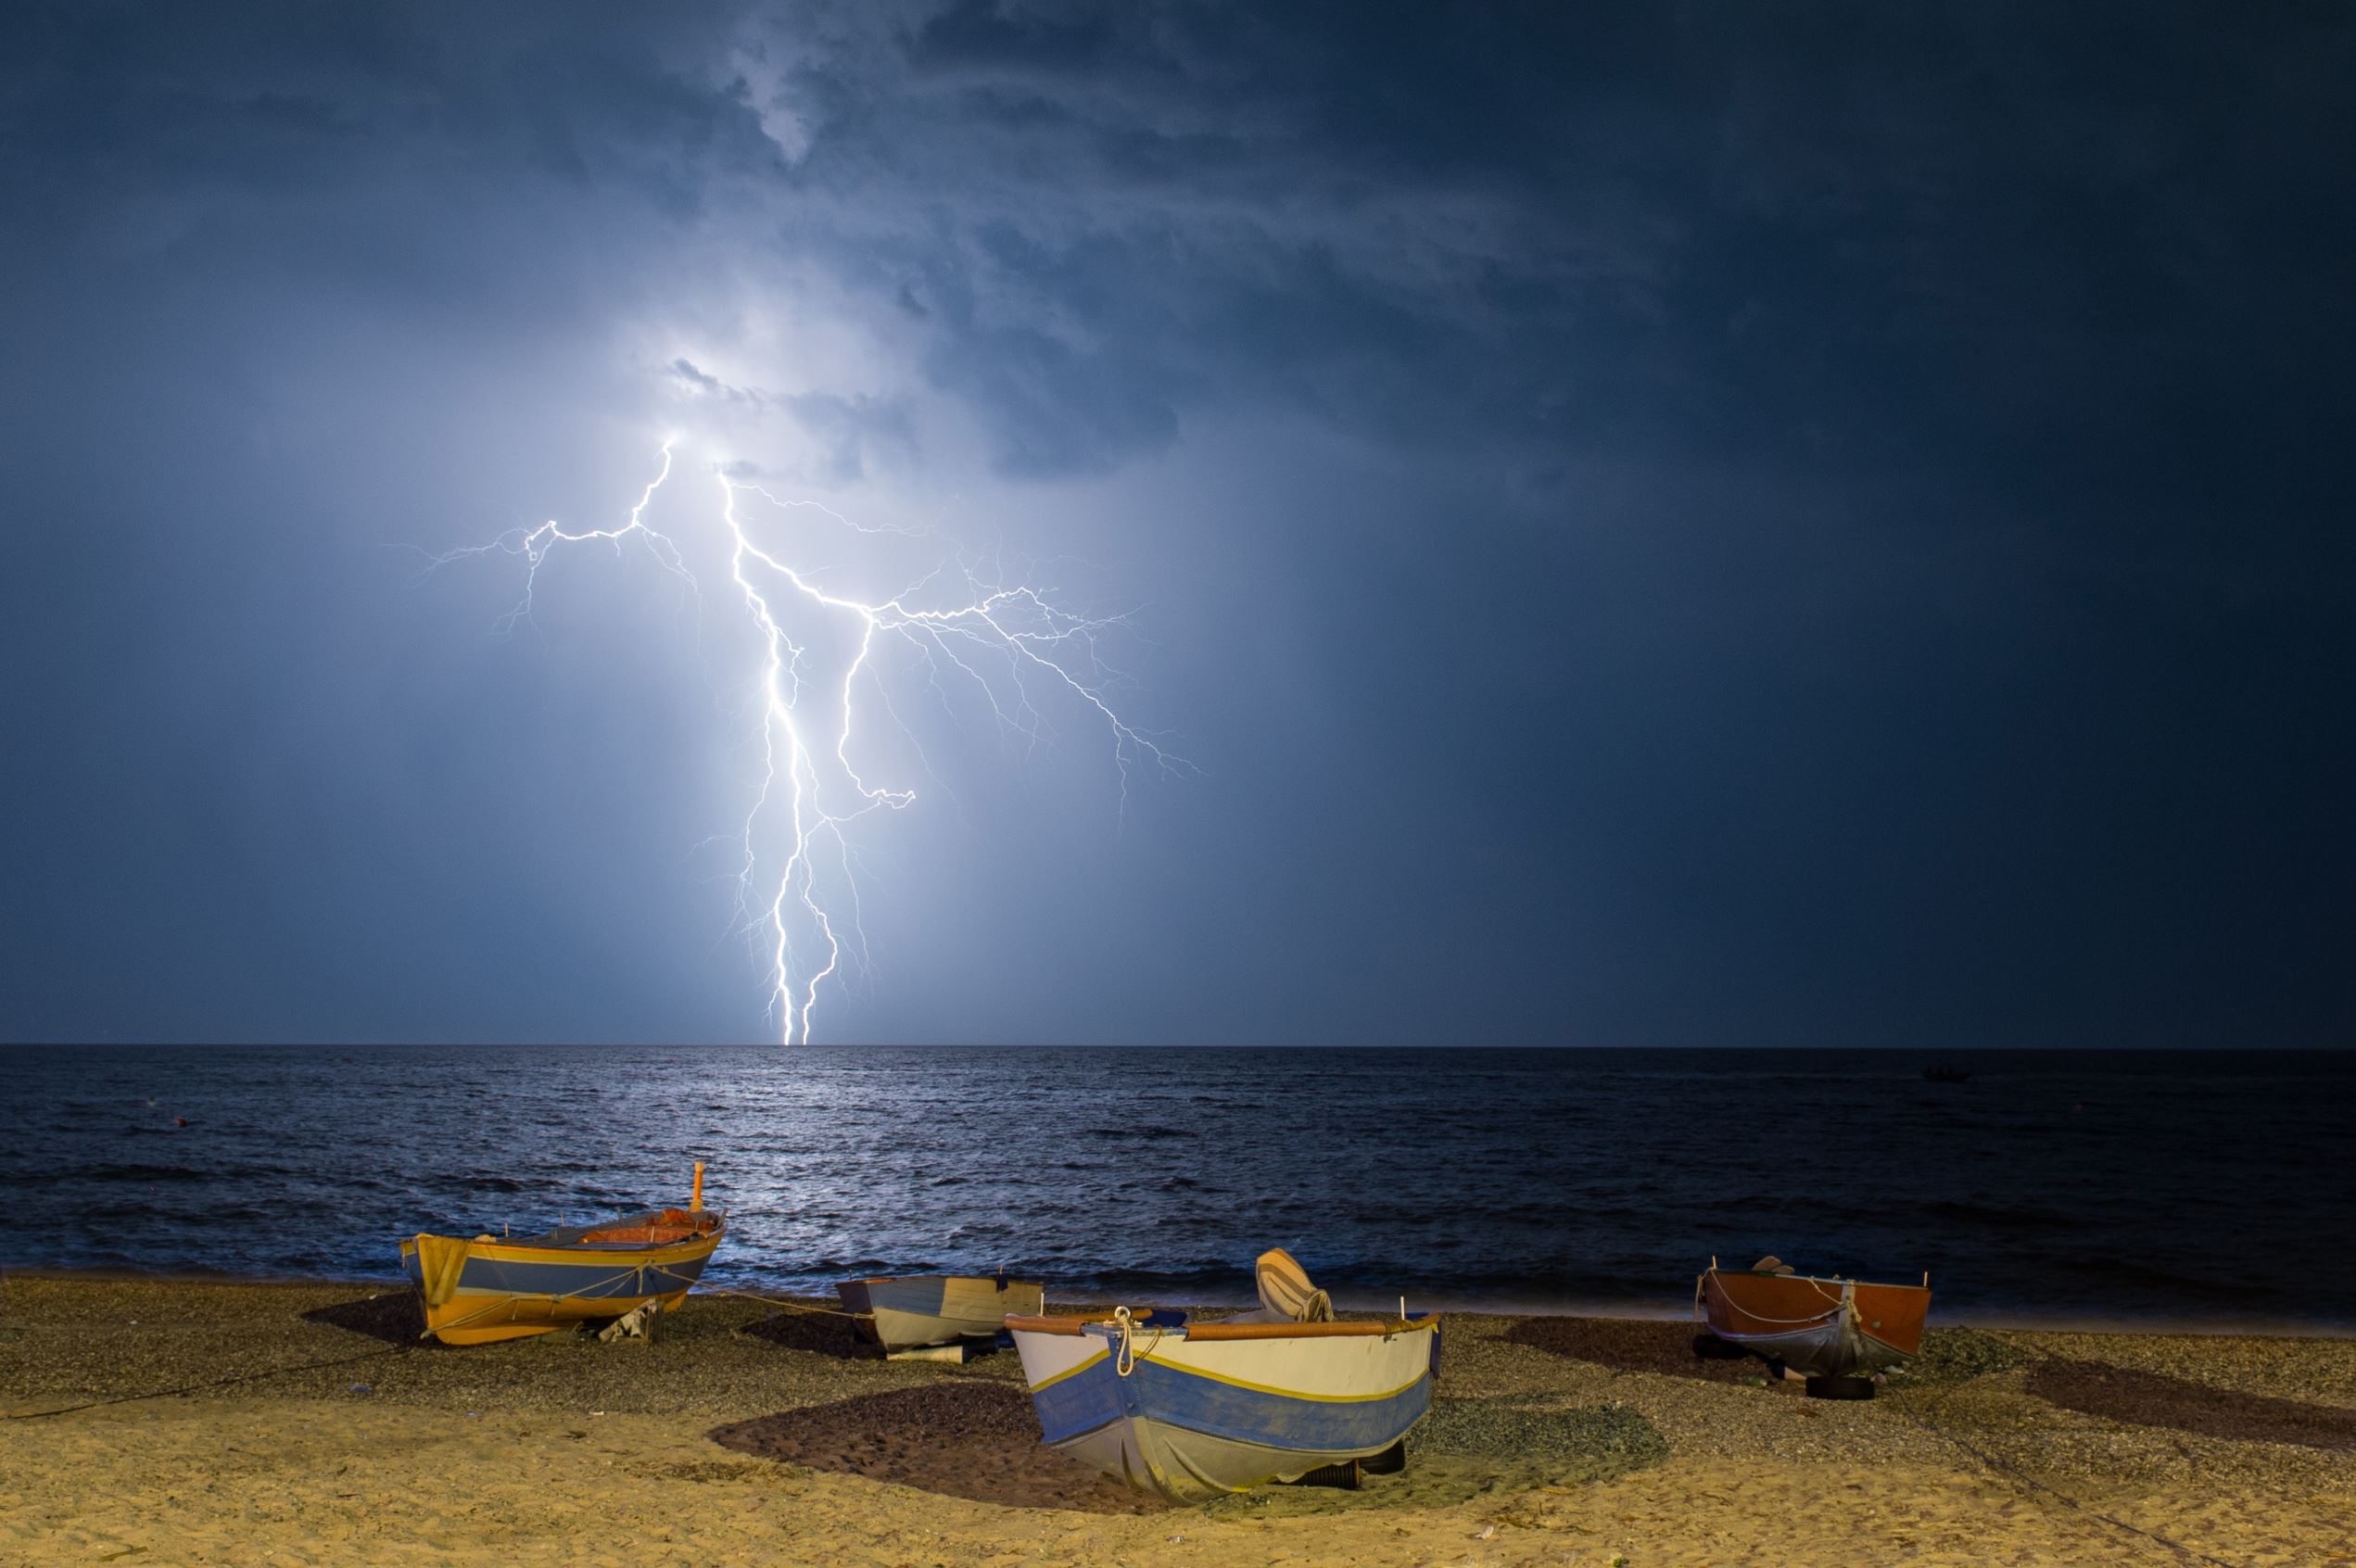 Слайд 58 из 86: Lightning storm on the Ionian Sea, Italy - 24 Jun 2016 Lightning strike off the coast of Calabria and Basilicata